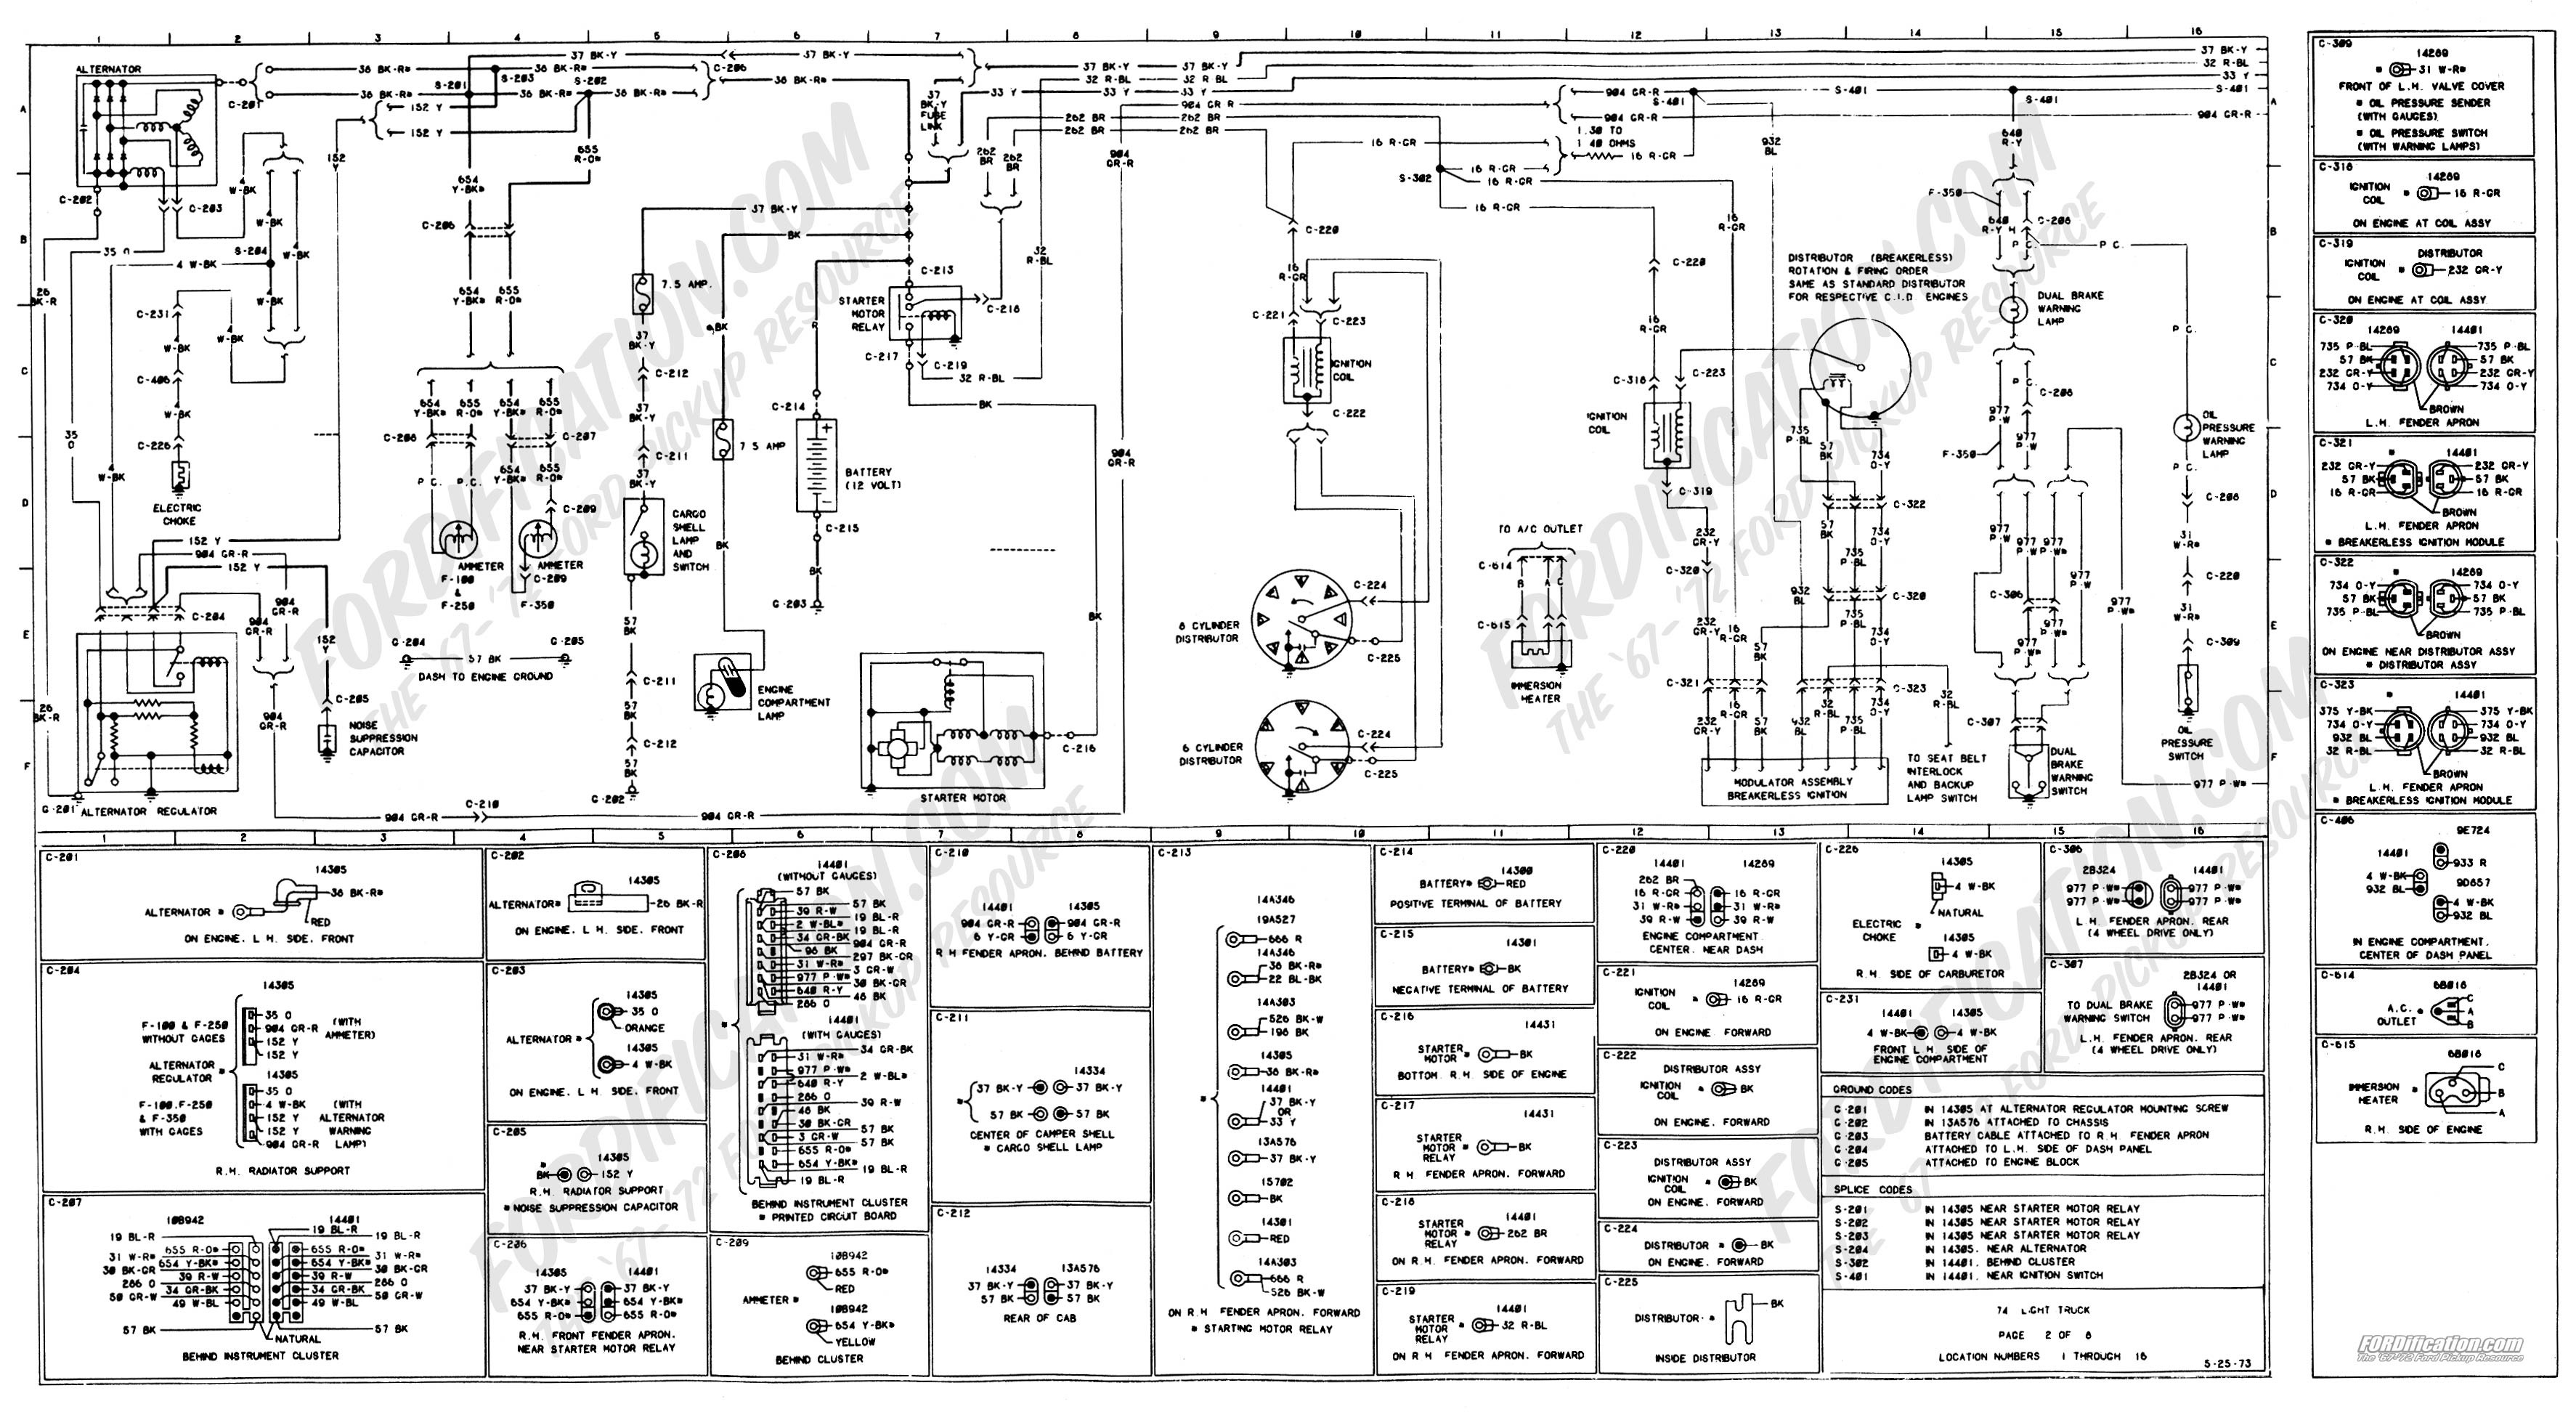 1974 Ford Wiring Diagram Starting Know About Mercedes Benz E 420 Fuse Box F100 Another Blog U2022 Rh Ok2 Infoservice Ru Bronco F250